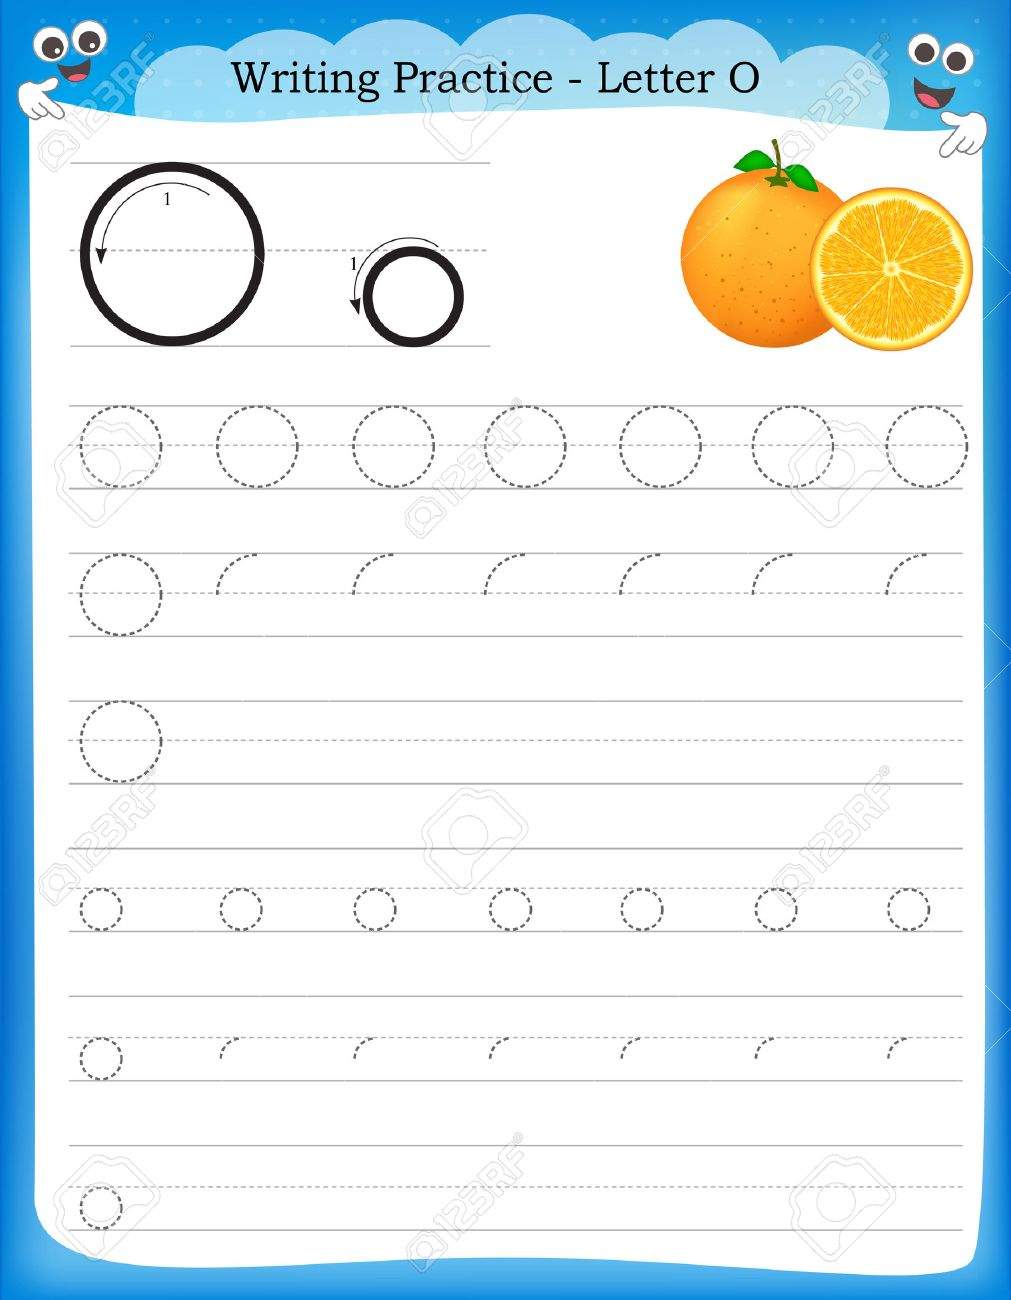 Writing Practice Letter O Printable Worksheet With Clip Art – Letter O Worksheets Kindergarten